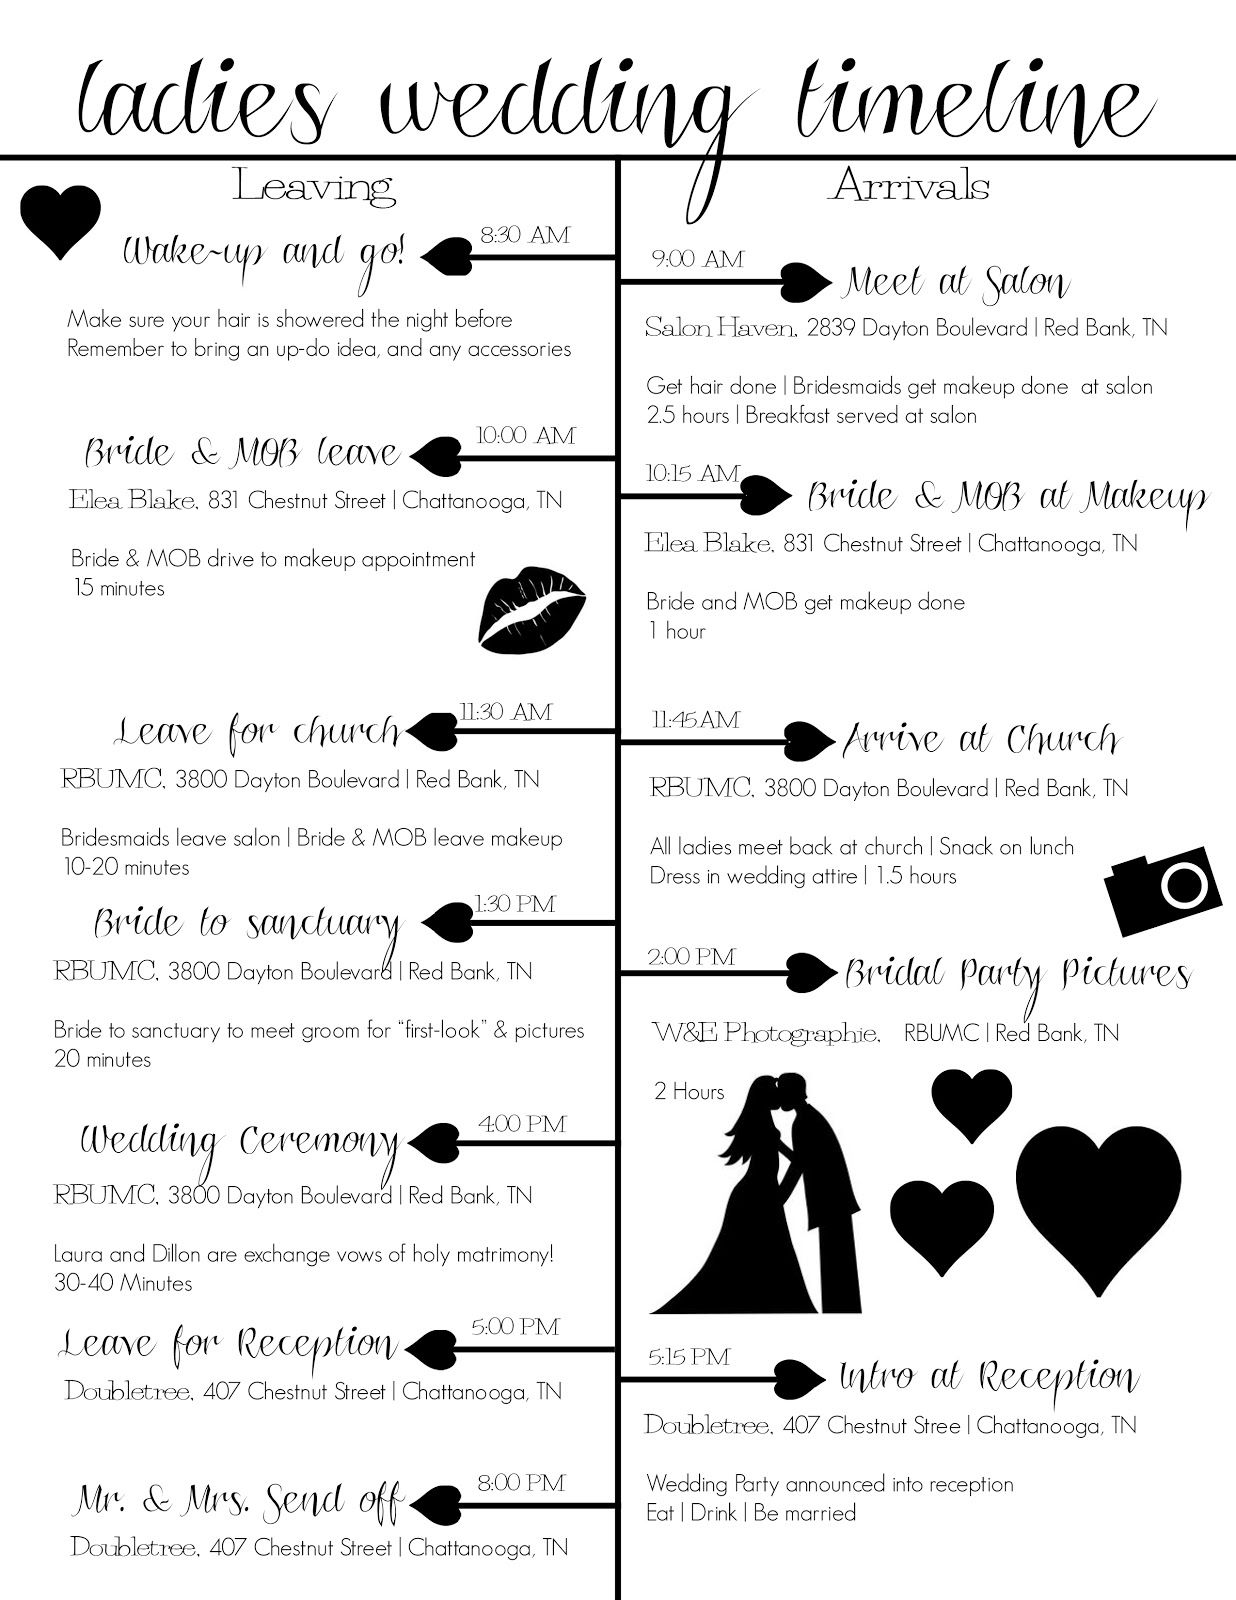 DAY OF Wedding timeline idea one of the best timelines